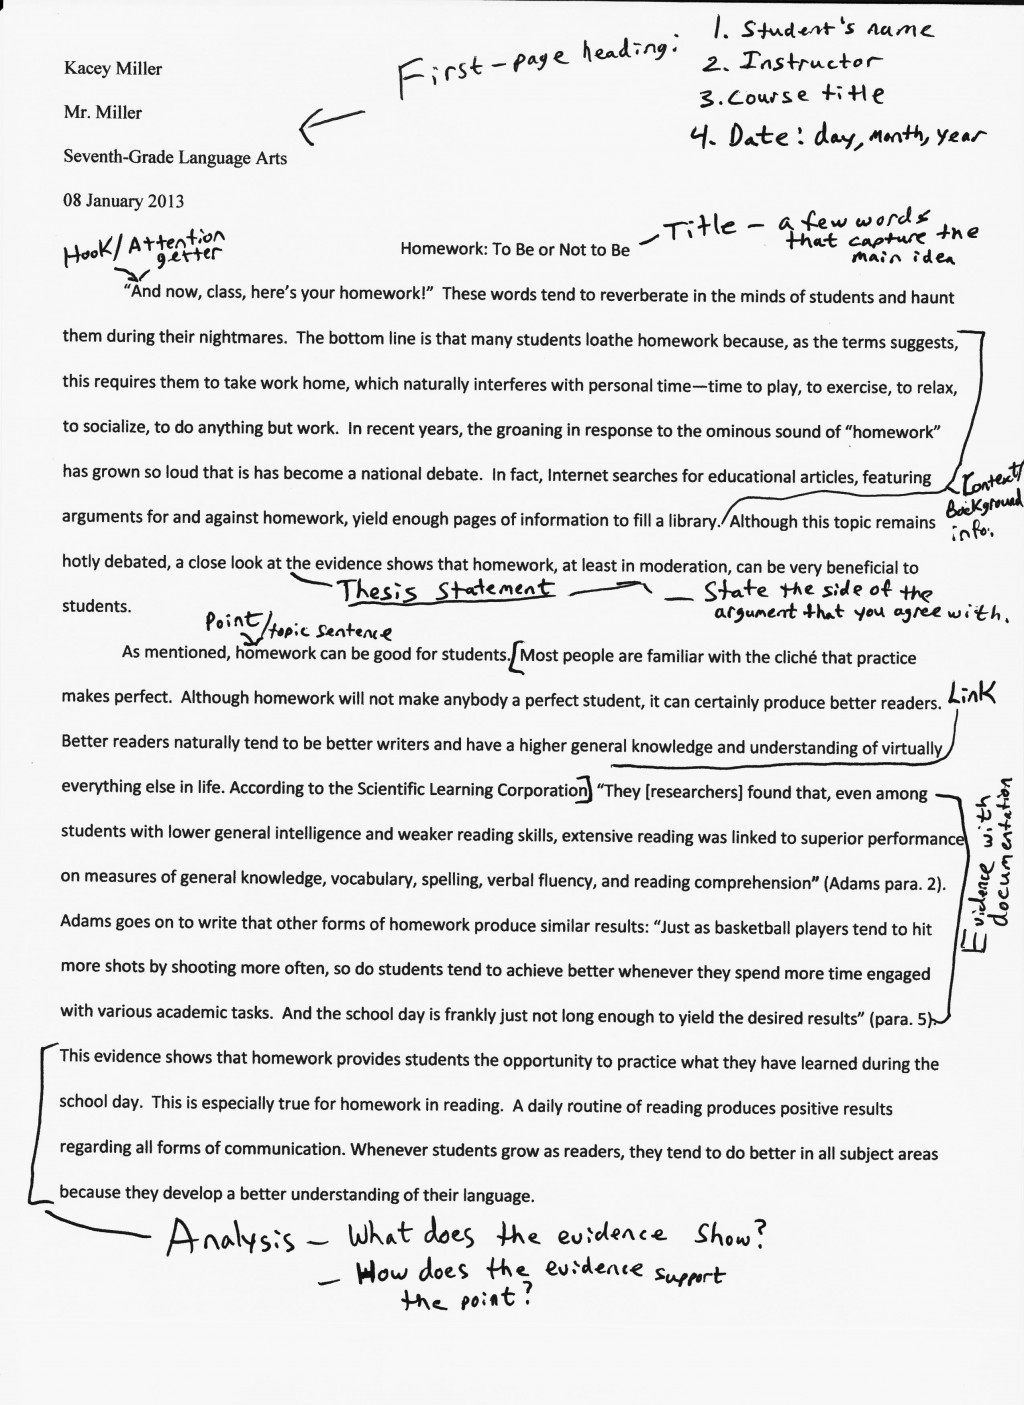 012 Essay Example Mentor20argument20essay20page20120001 Pro Death Fearsome Penalty Con Debate Argumentative Outline Large